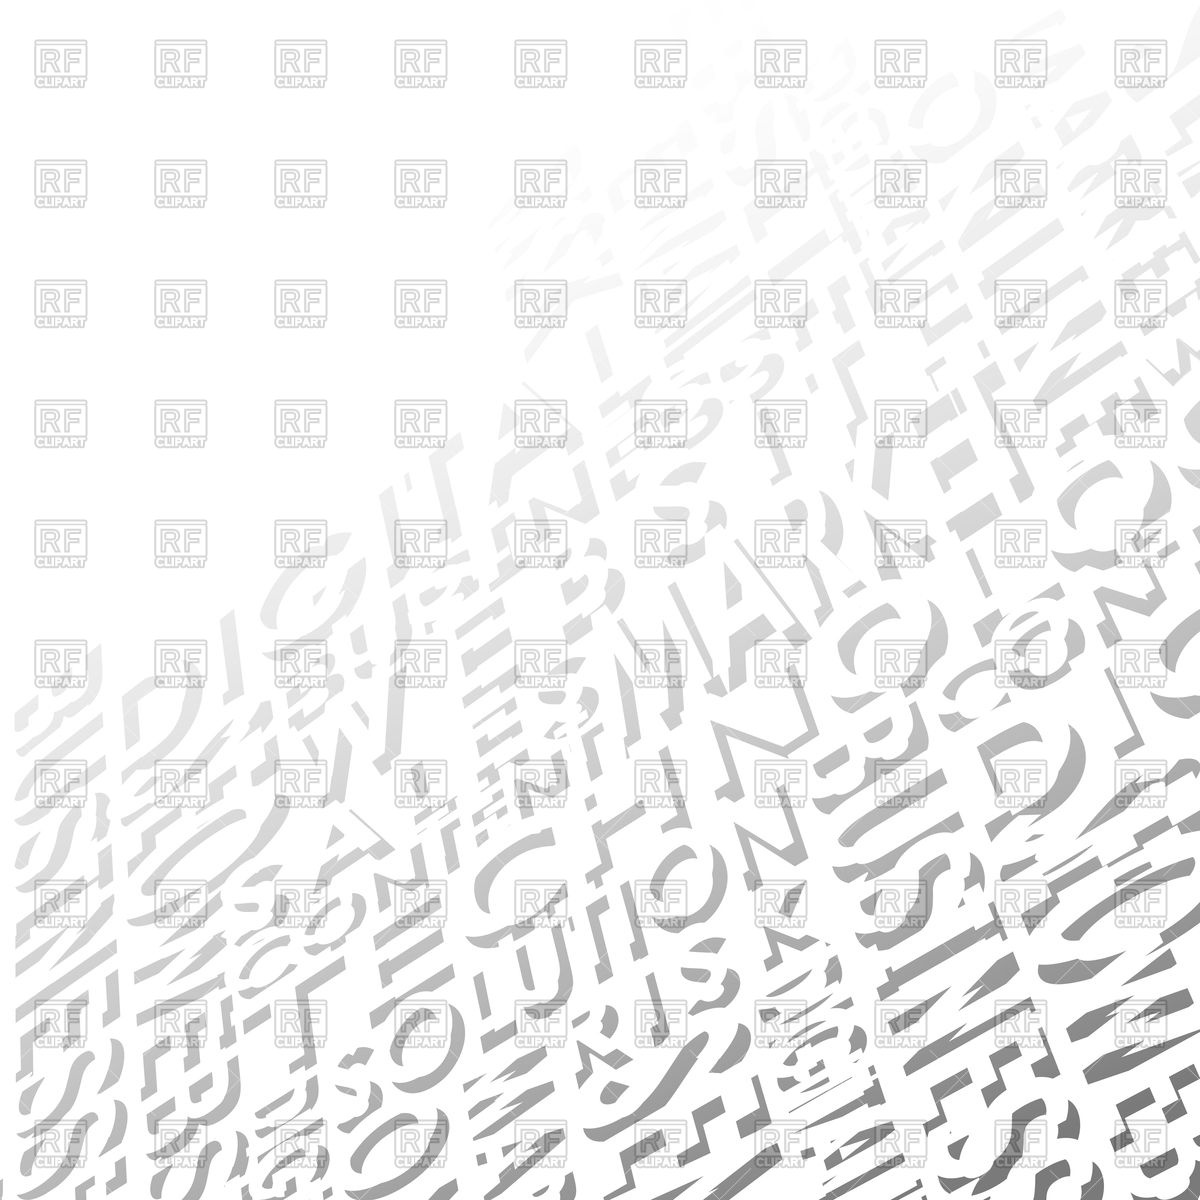 White background consisting of words Vector Image of Backgrounds 1200x1200